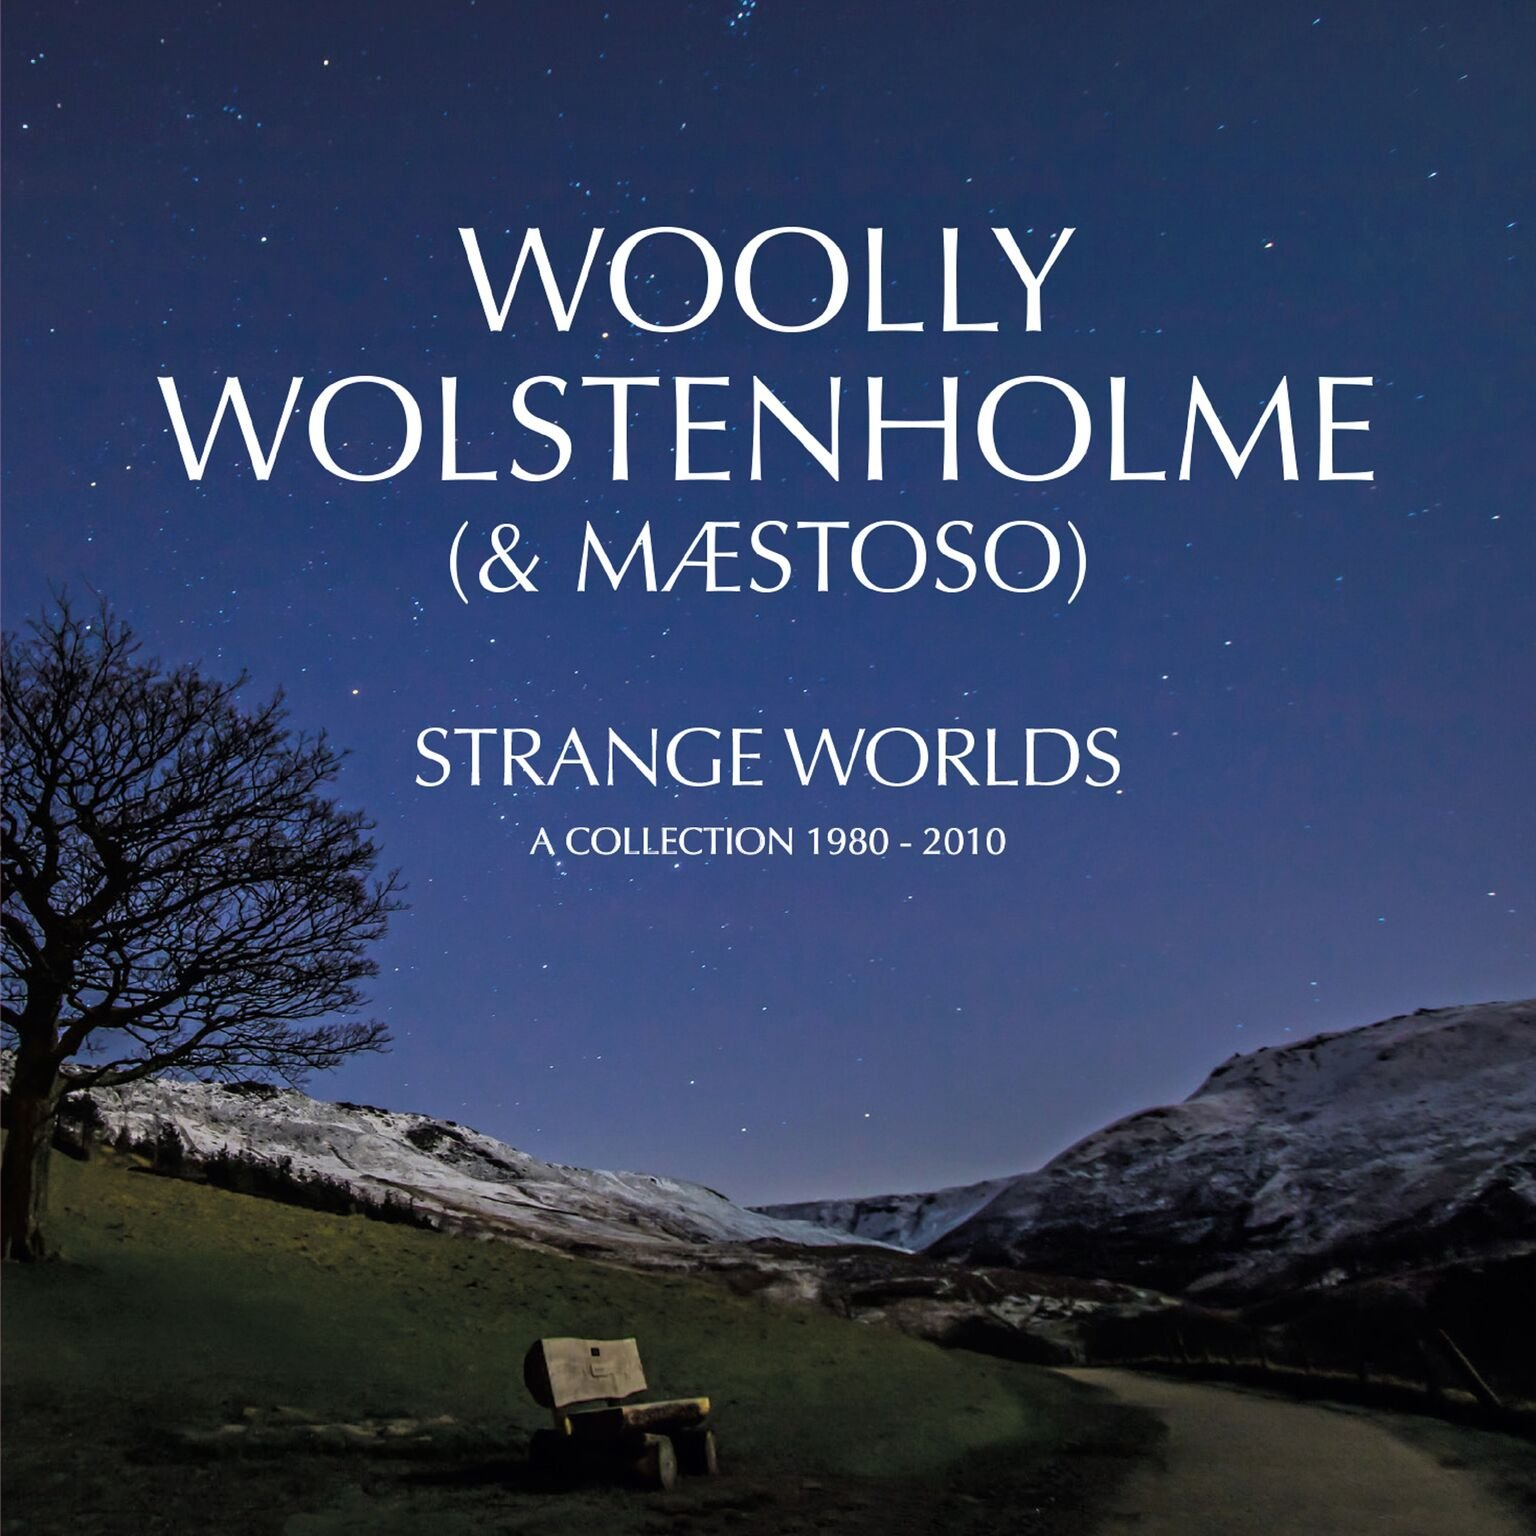 CD : Wolstenholme, Woolly / Maestoso - Strange Worlds: Collection 1980-2010 (Boxed Set, United Kingdom - Import, 7PC)